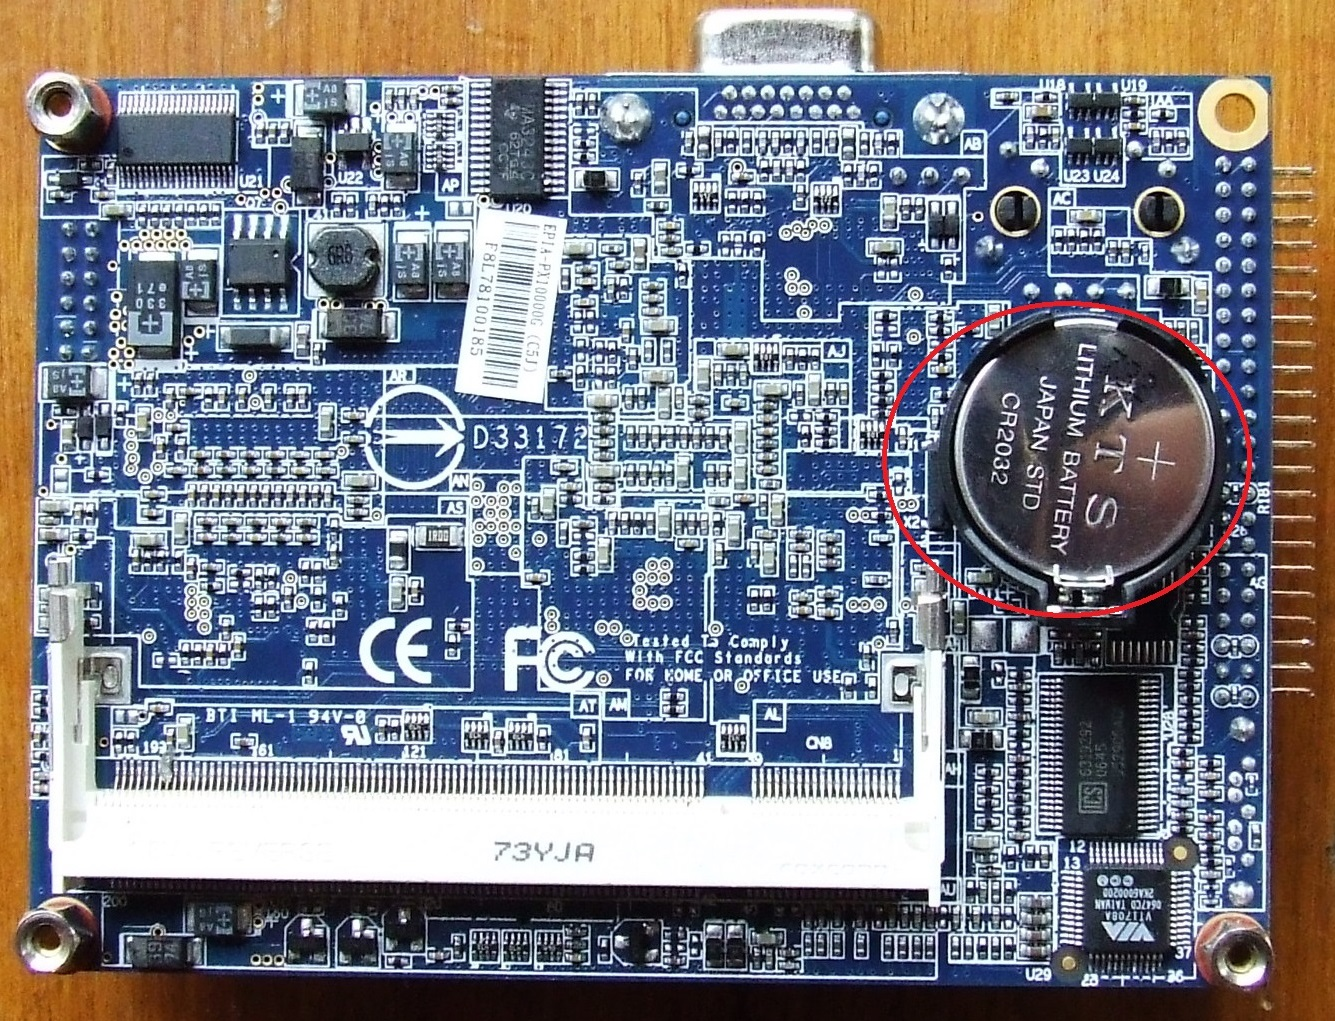 Motherboard Failure: Diagnosis and Solutions - PCMech